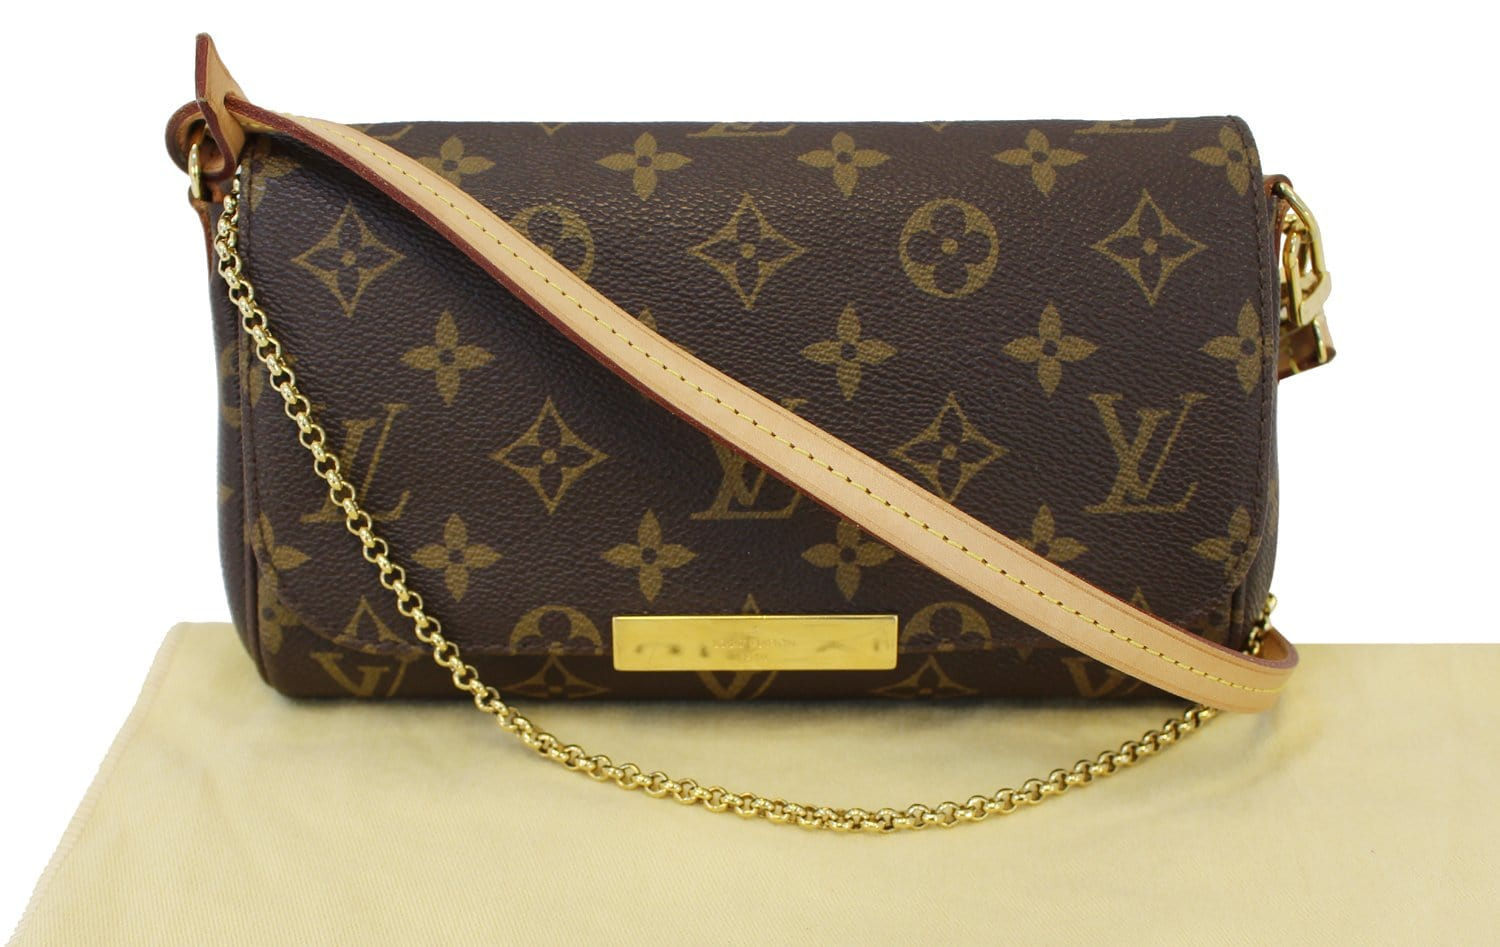 40fda81c8db Authentic louis vuitton monogram canvas favorite crossbody bag JPG 1500x947 Louis  vuitton sling bag